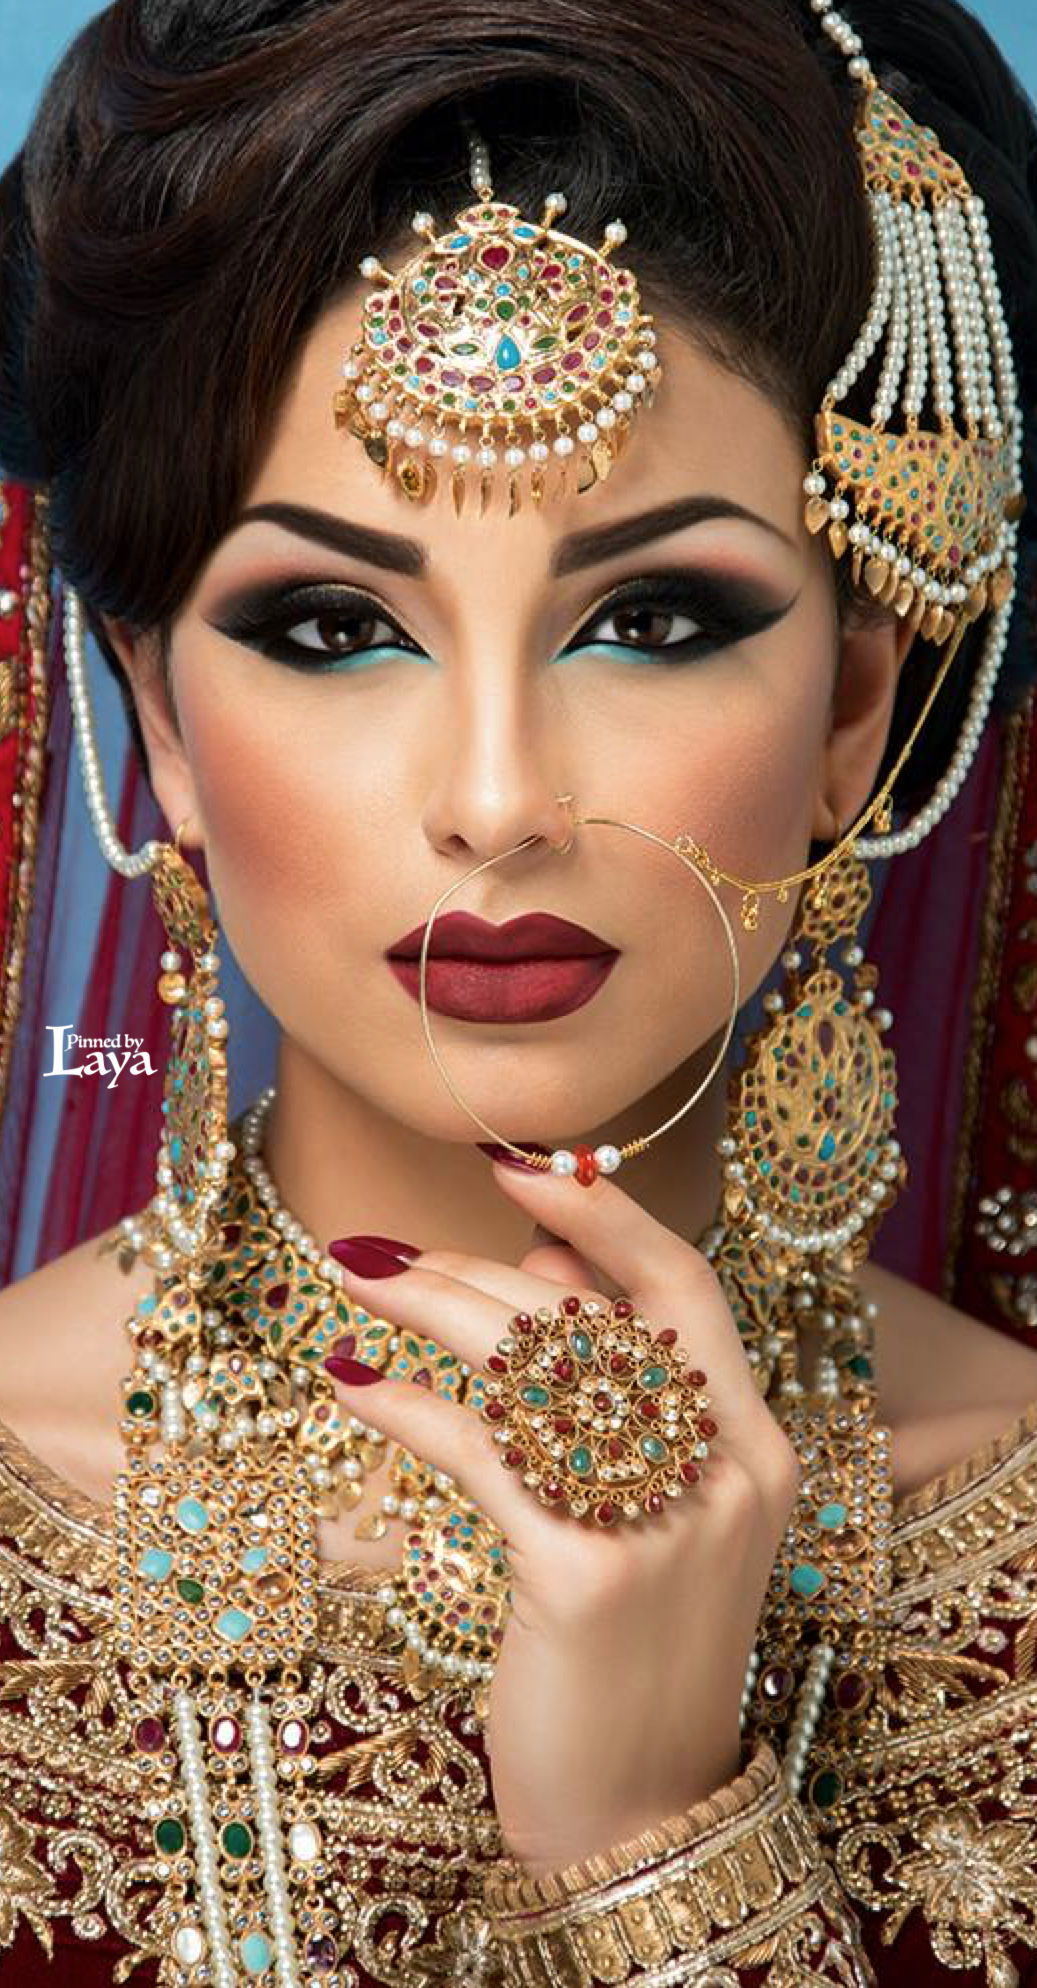 pin by label shrena hirawat on beauty, hair, makeup in 2019